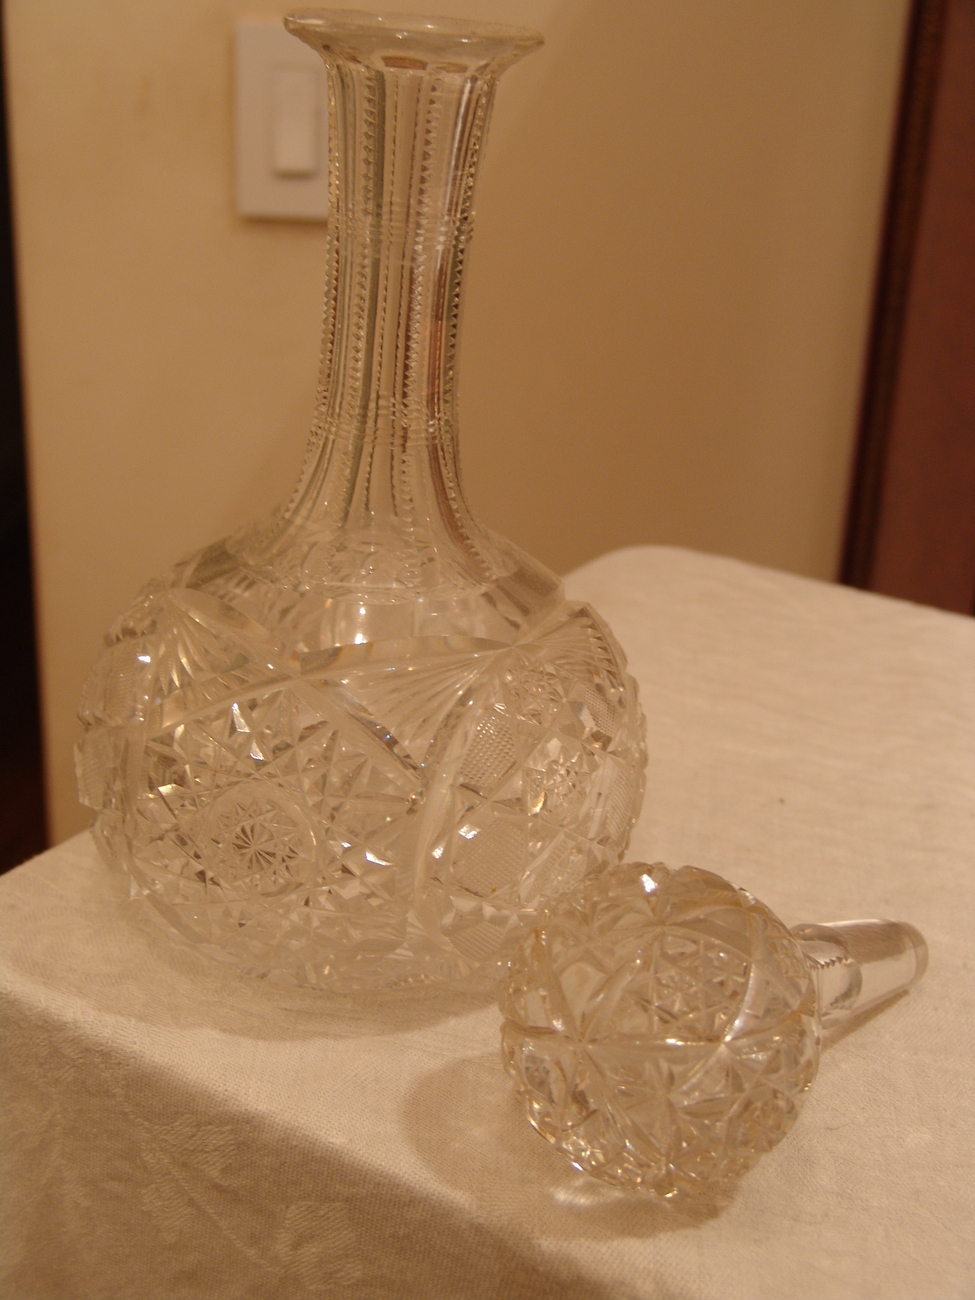 BRILLIANT CUT CRYSTAL DECANTER WITH STOPPER